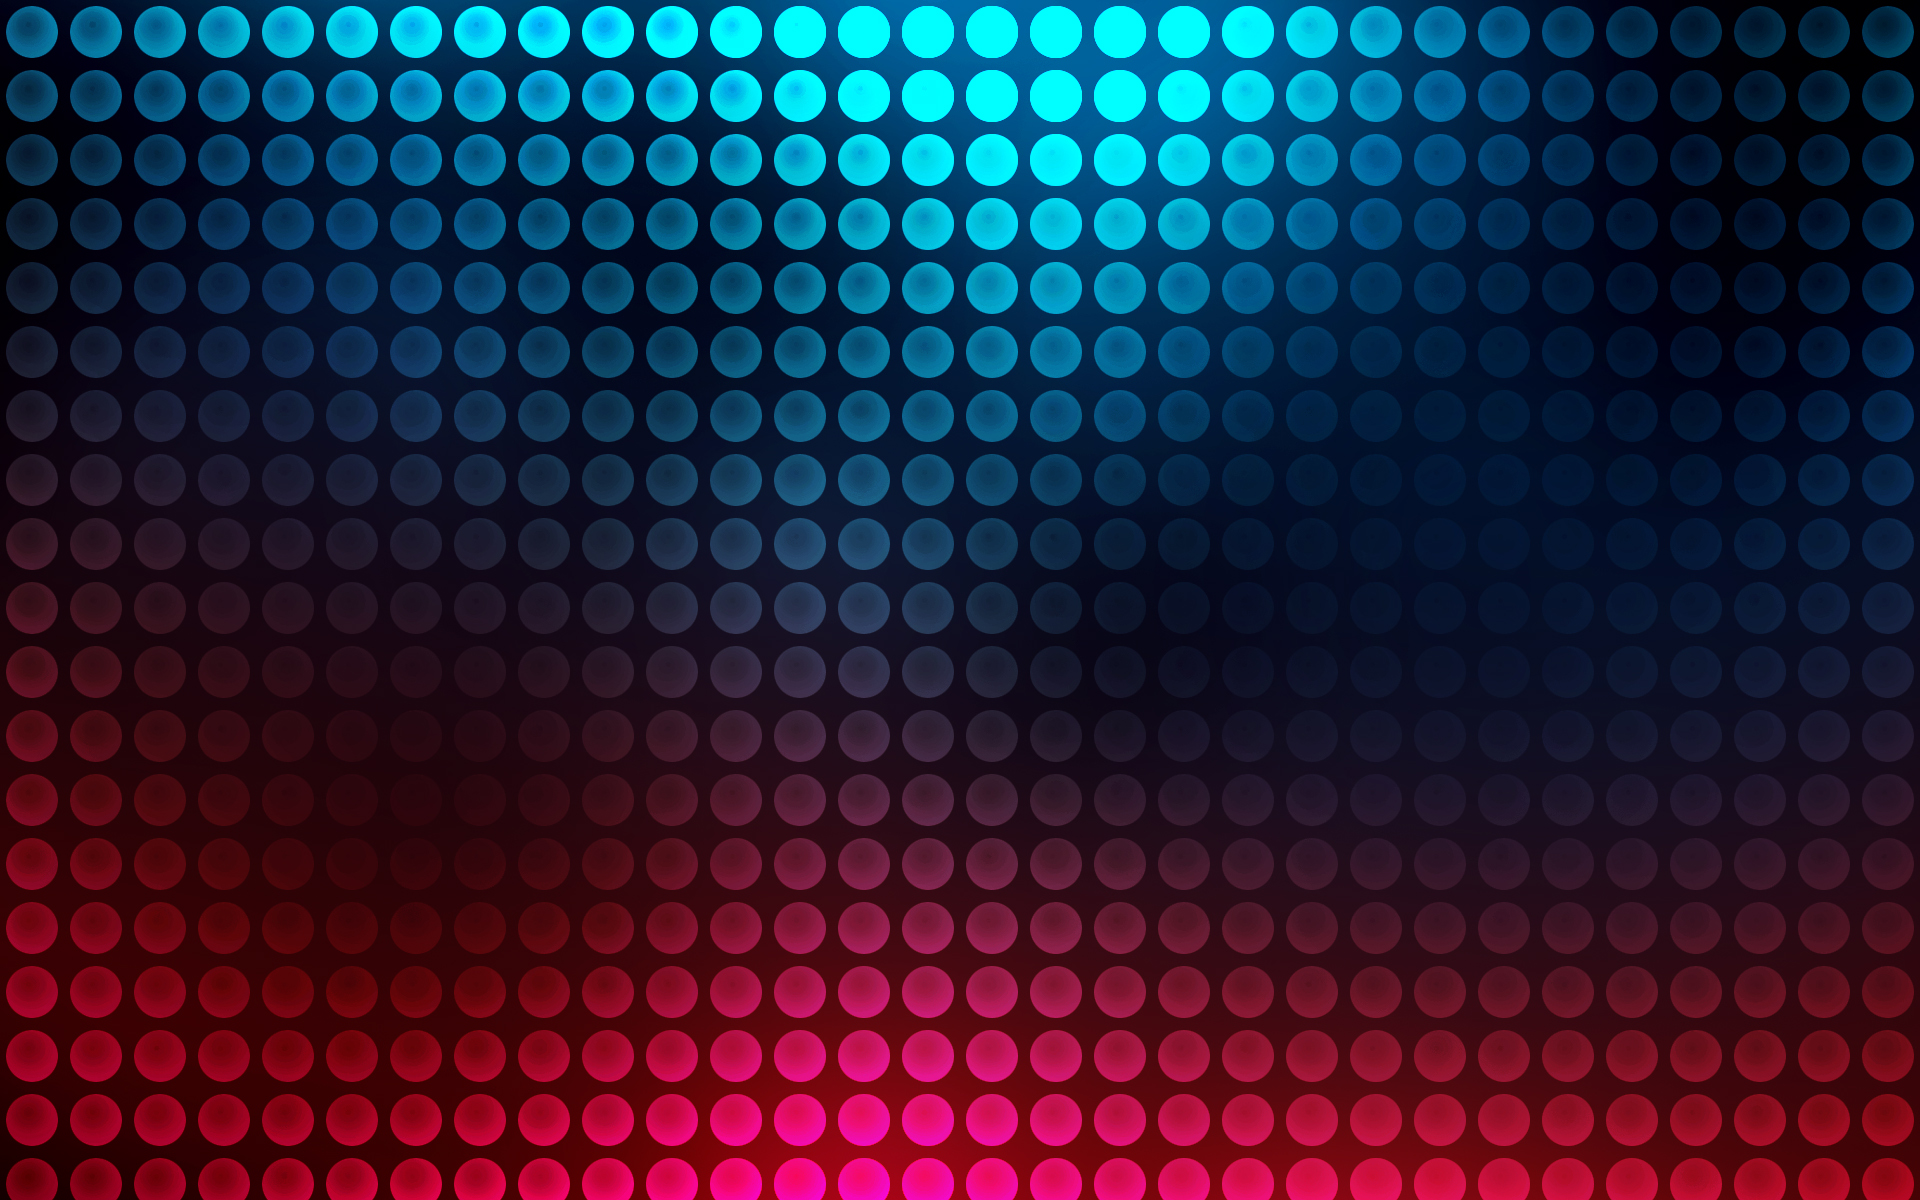 Cool Blue And Red Backgrounds Images Pictures   Becuo 1920x1200